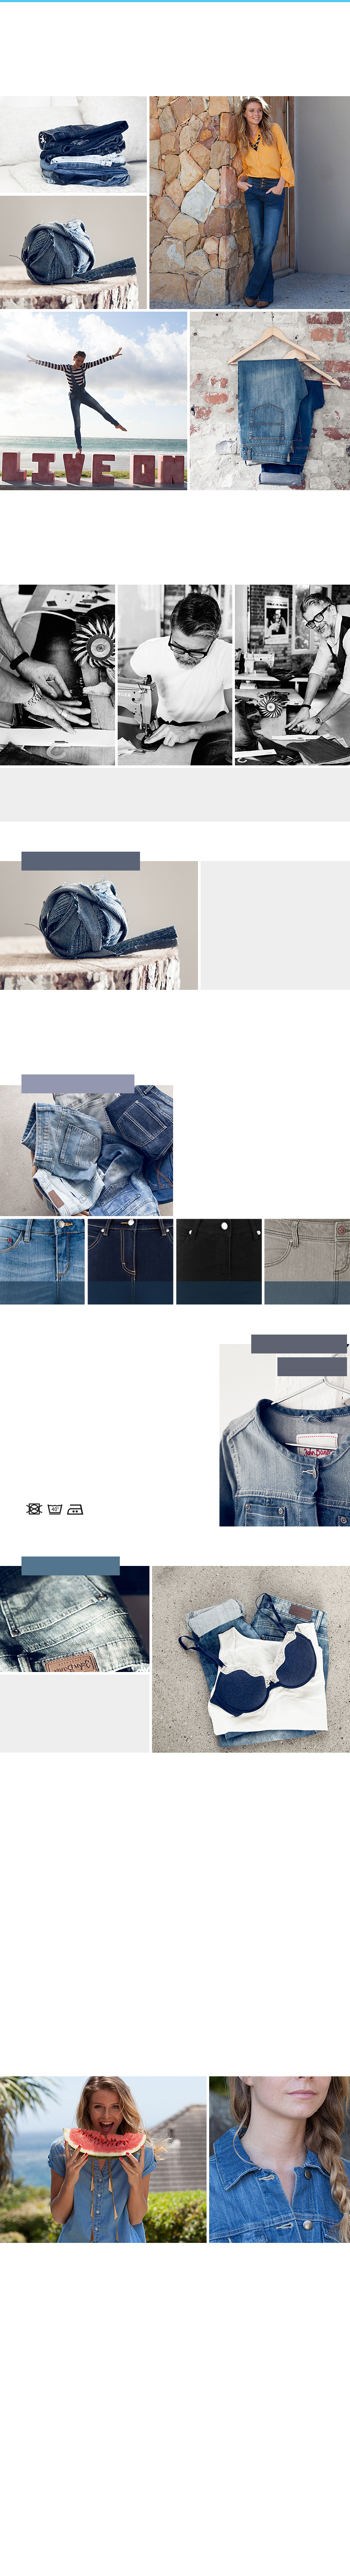 teaser/bpit/freies_layout/IT_BI_RK_STIL_DenimGuide_0616.jpg